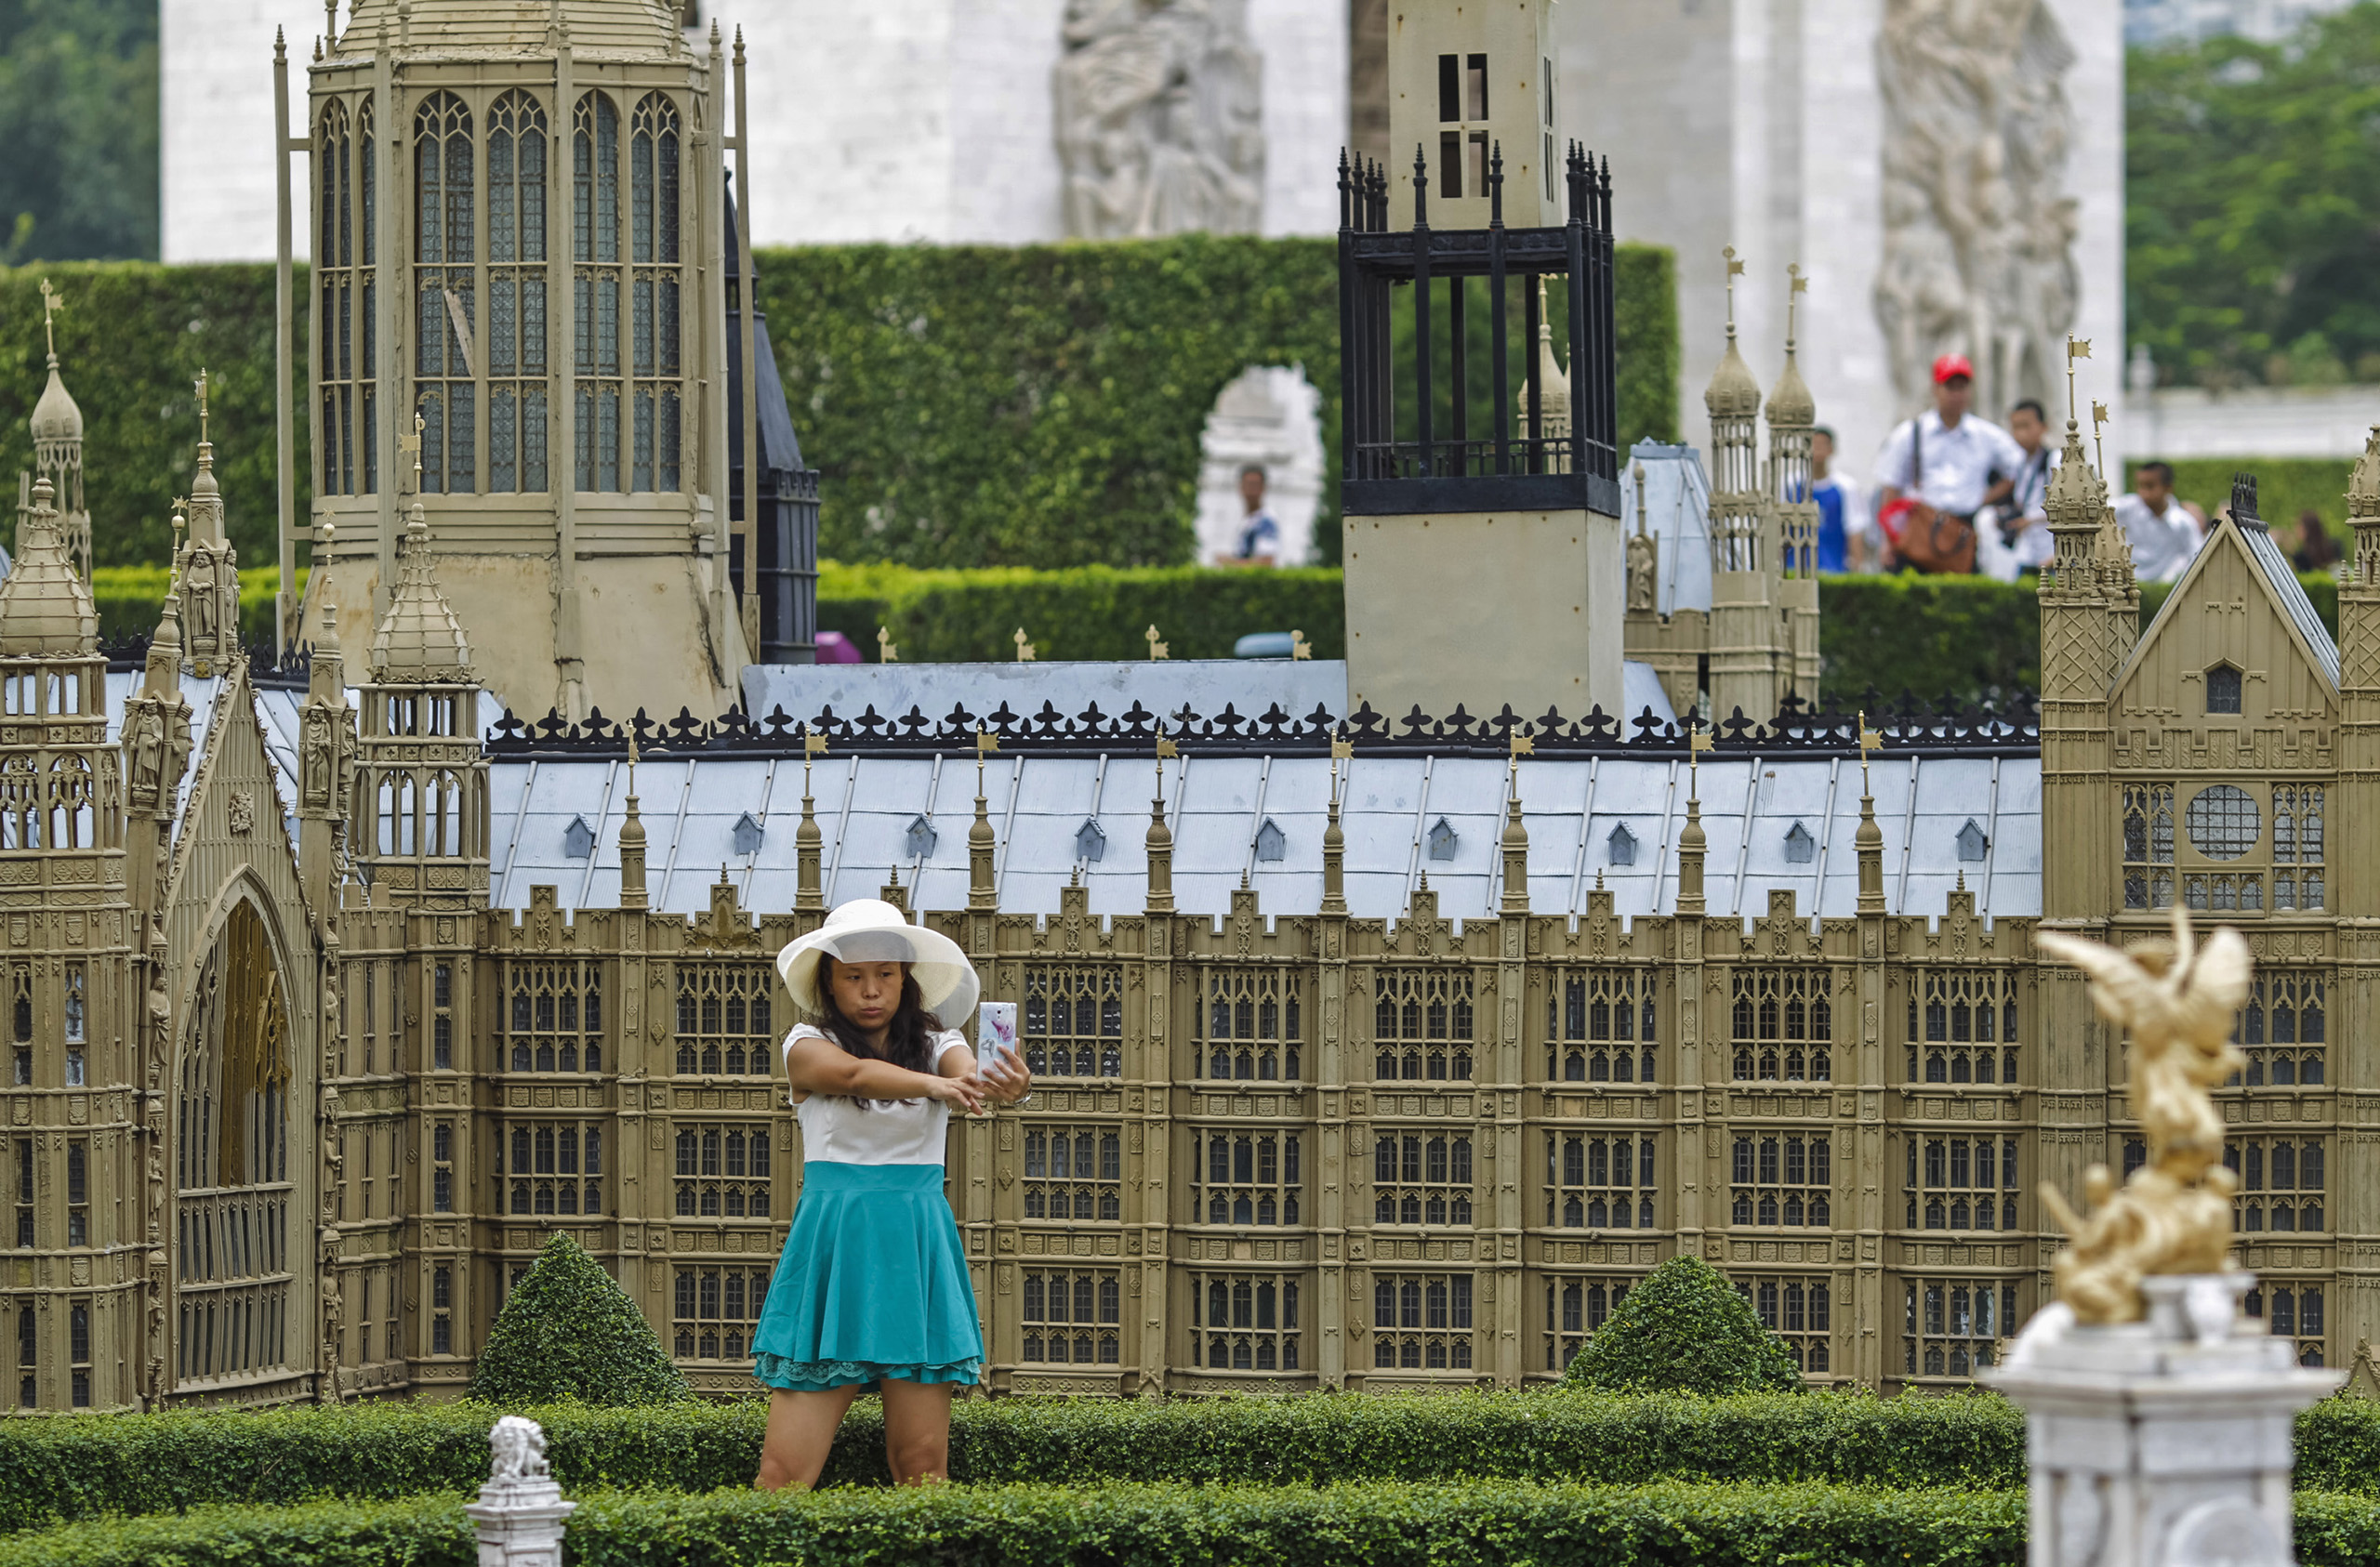 A woman poses for a selfie in front of a miniature replica of London's Houses of Parliament, at a theme park called  Window Of The World  in Shenzhen, Guangdong province.